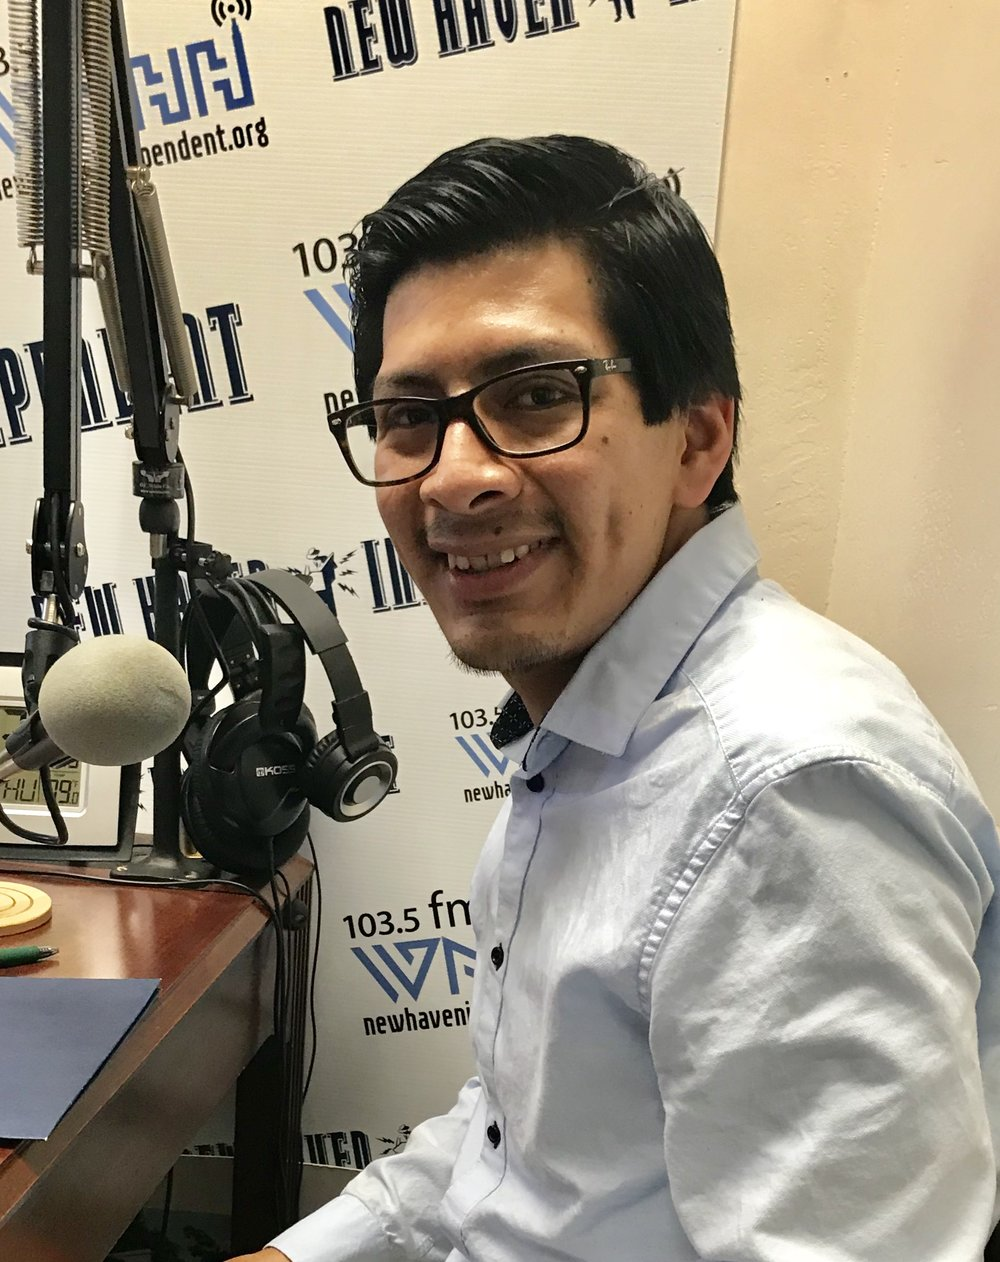 Host Kica Matos speaks with Sergio Ramirez, Junta For Progressive Action. They talk about the current political environment under Trump, and the safeguards being put in place to help the undocumented immigrants.